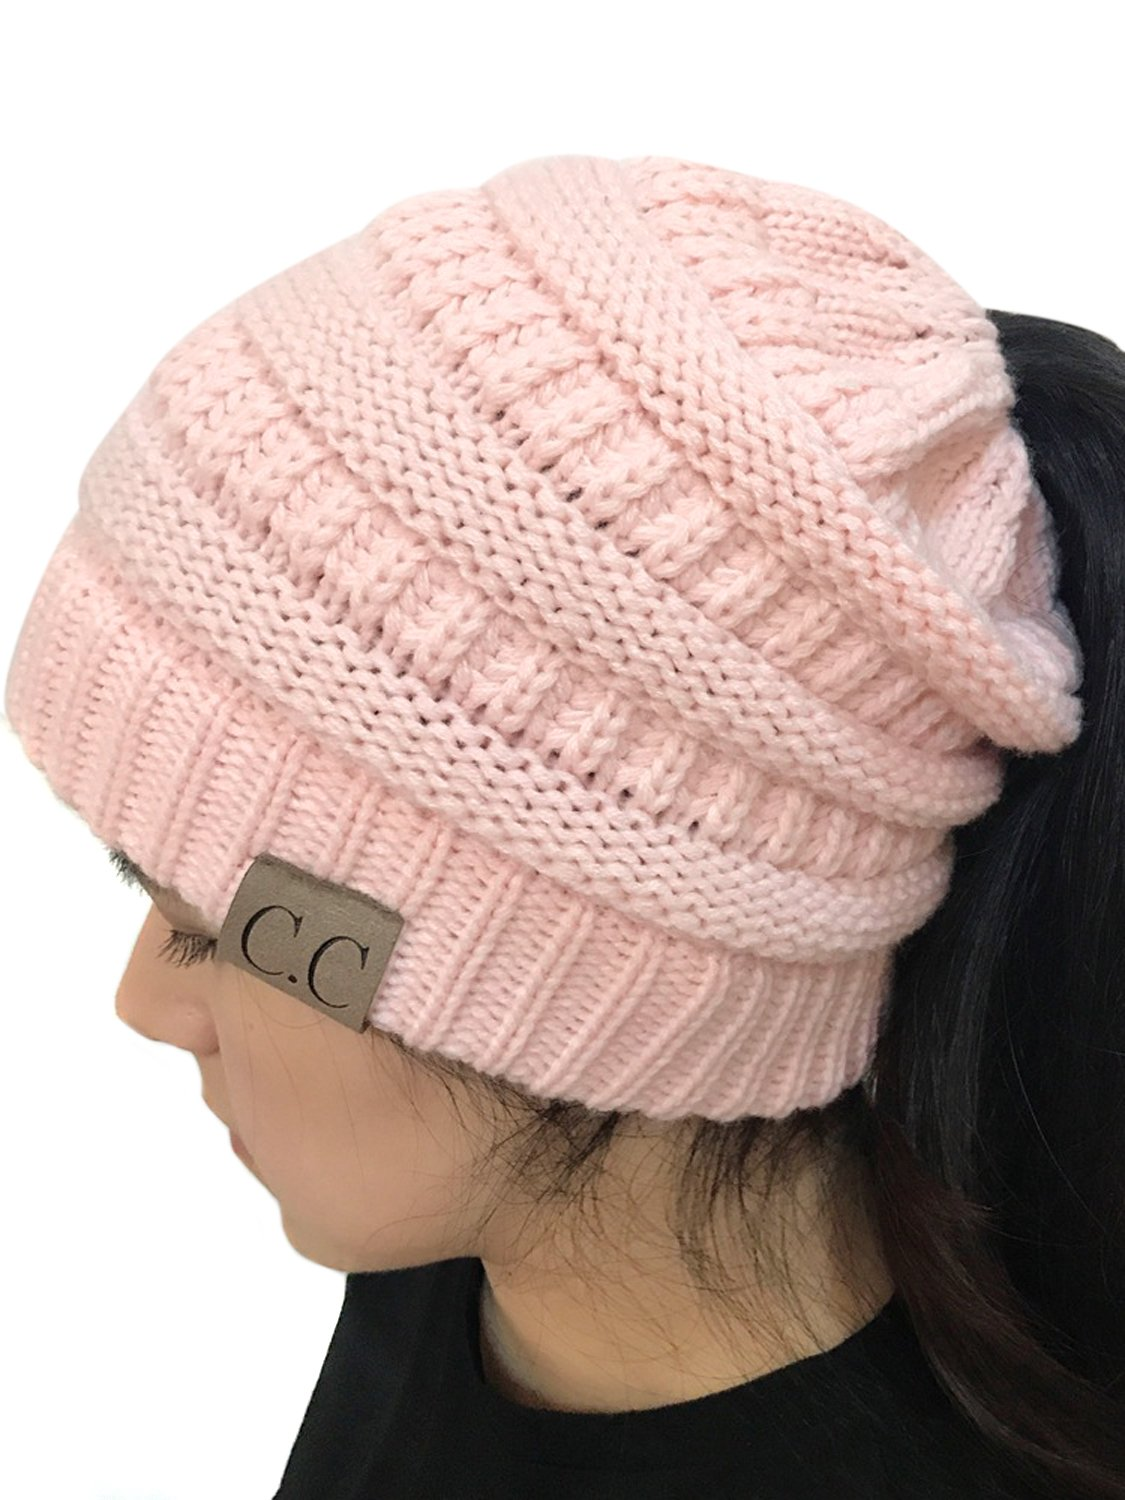 Joeoy Women's Light Pink Stretch Messy High Bun Ponytail Beanie Multi Color Cable Knit Hat Cap